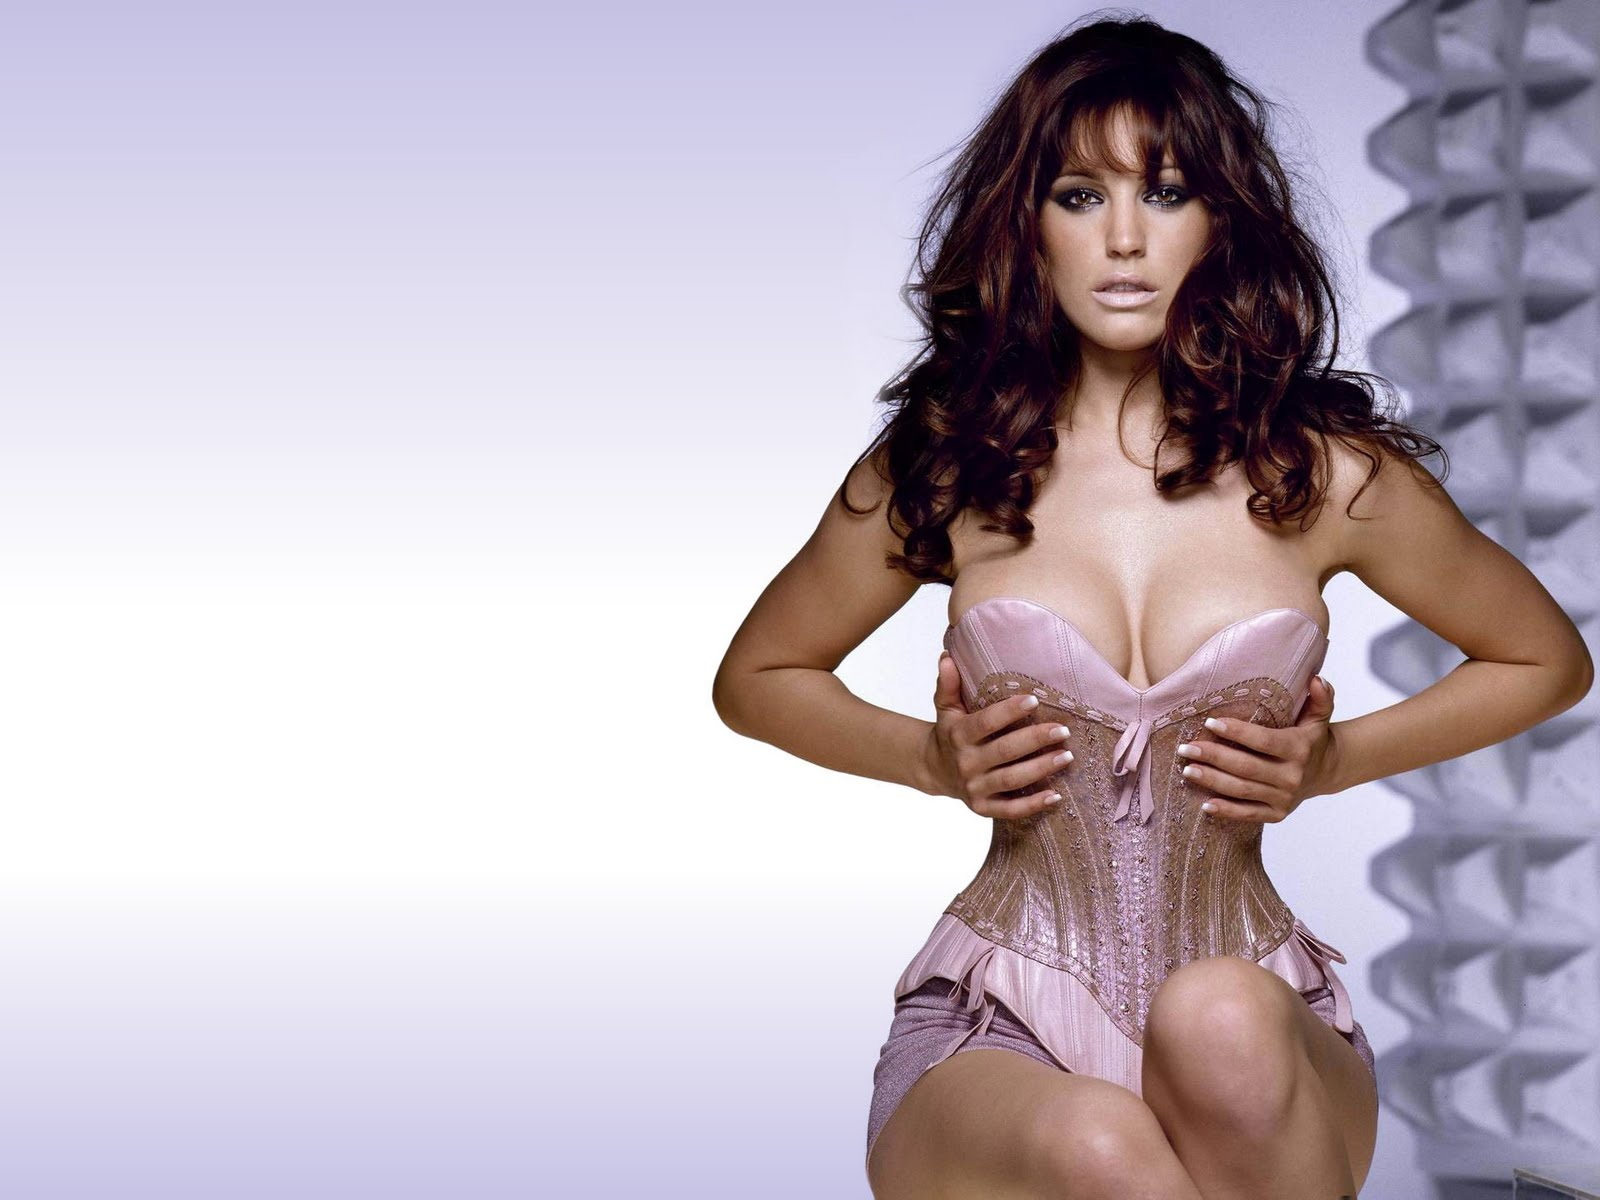 http://4.bp.blogspot.com/_5wt45Sgxoi8/TH4syqqNldI/AAAAAAAABJM/8WK_xoW14Ys/s1600/kelly_brook_wallpaper.jpg